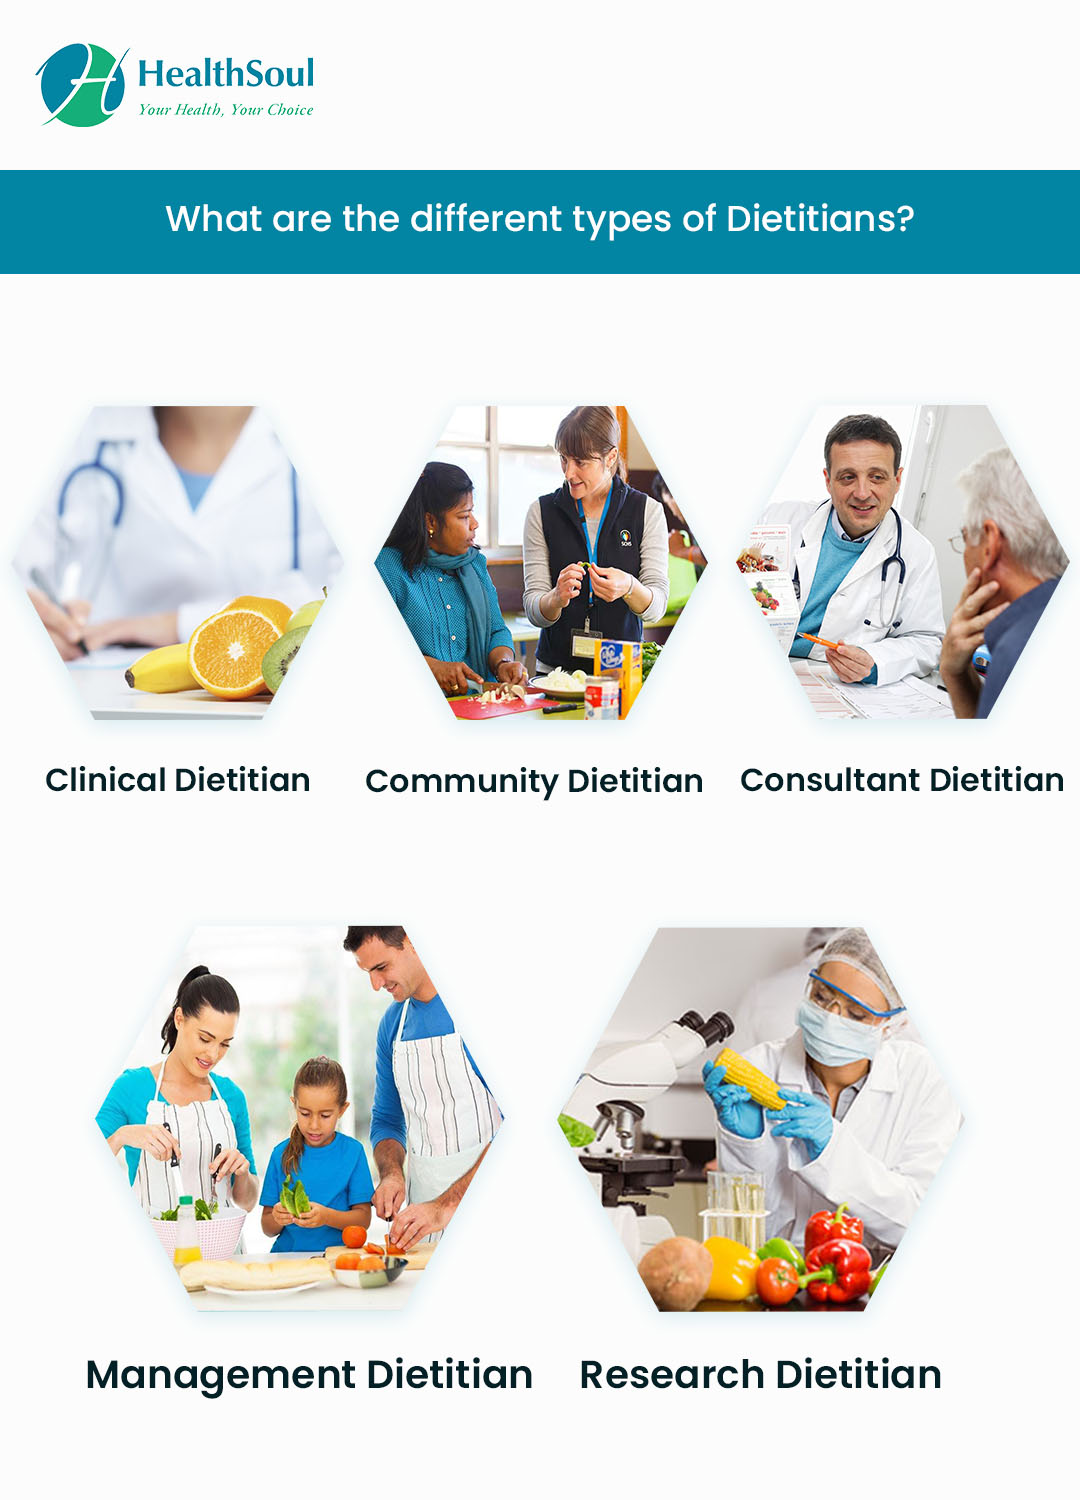 What are the different types of Dietitians?